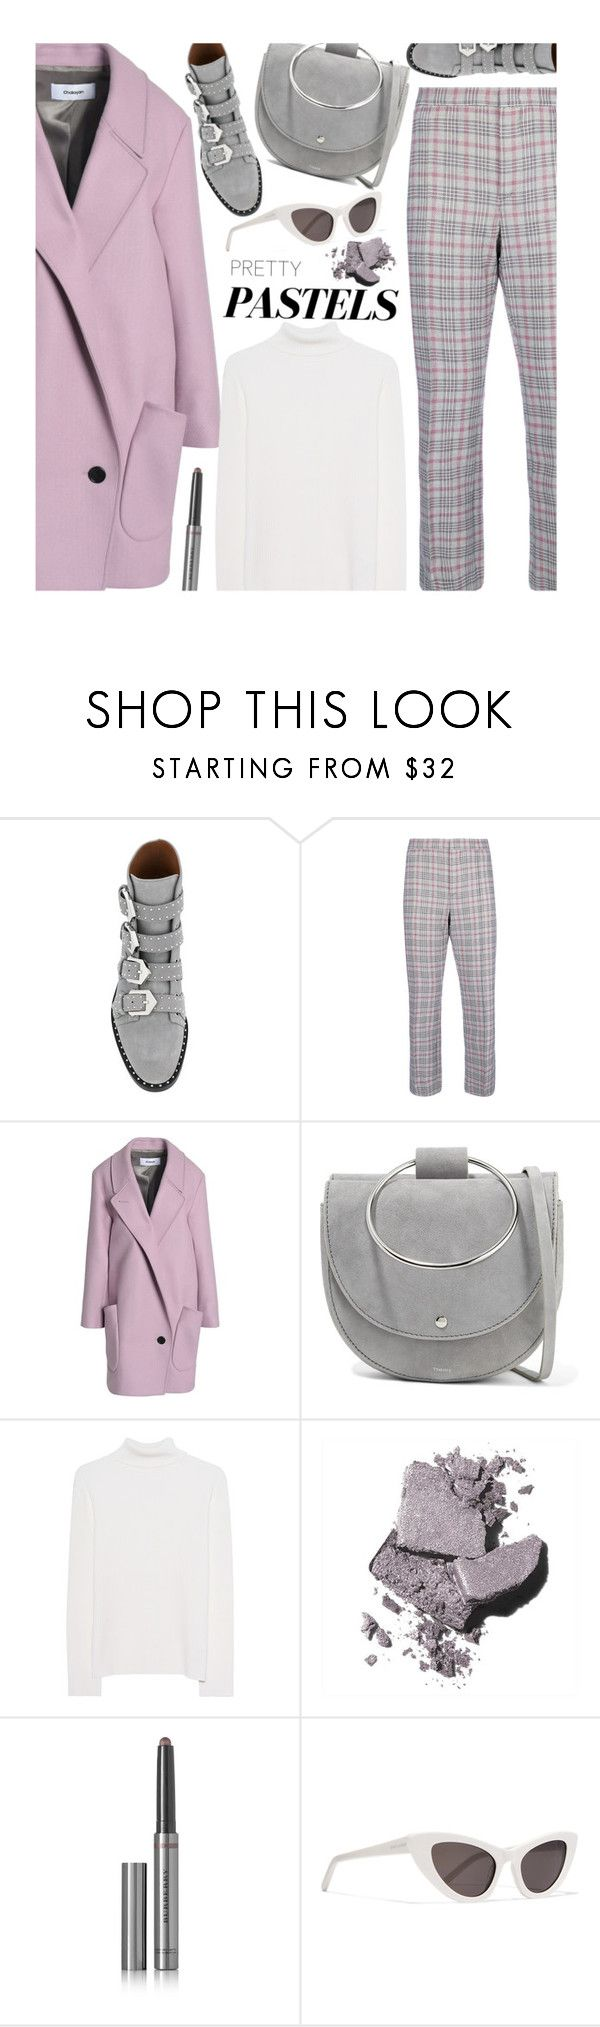 """Untitled #4430"" by beebeely-look ❤ liked on Polyvore featuring Givenchy, Isabel Marant, Chalayan, Theory, Victoria, Victoria Beckham, Bobbi Brown Cosmetics, Burberry, Yves Saint Laurent and pastelsweaters"